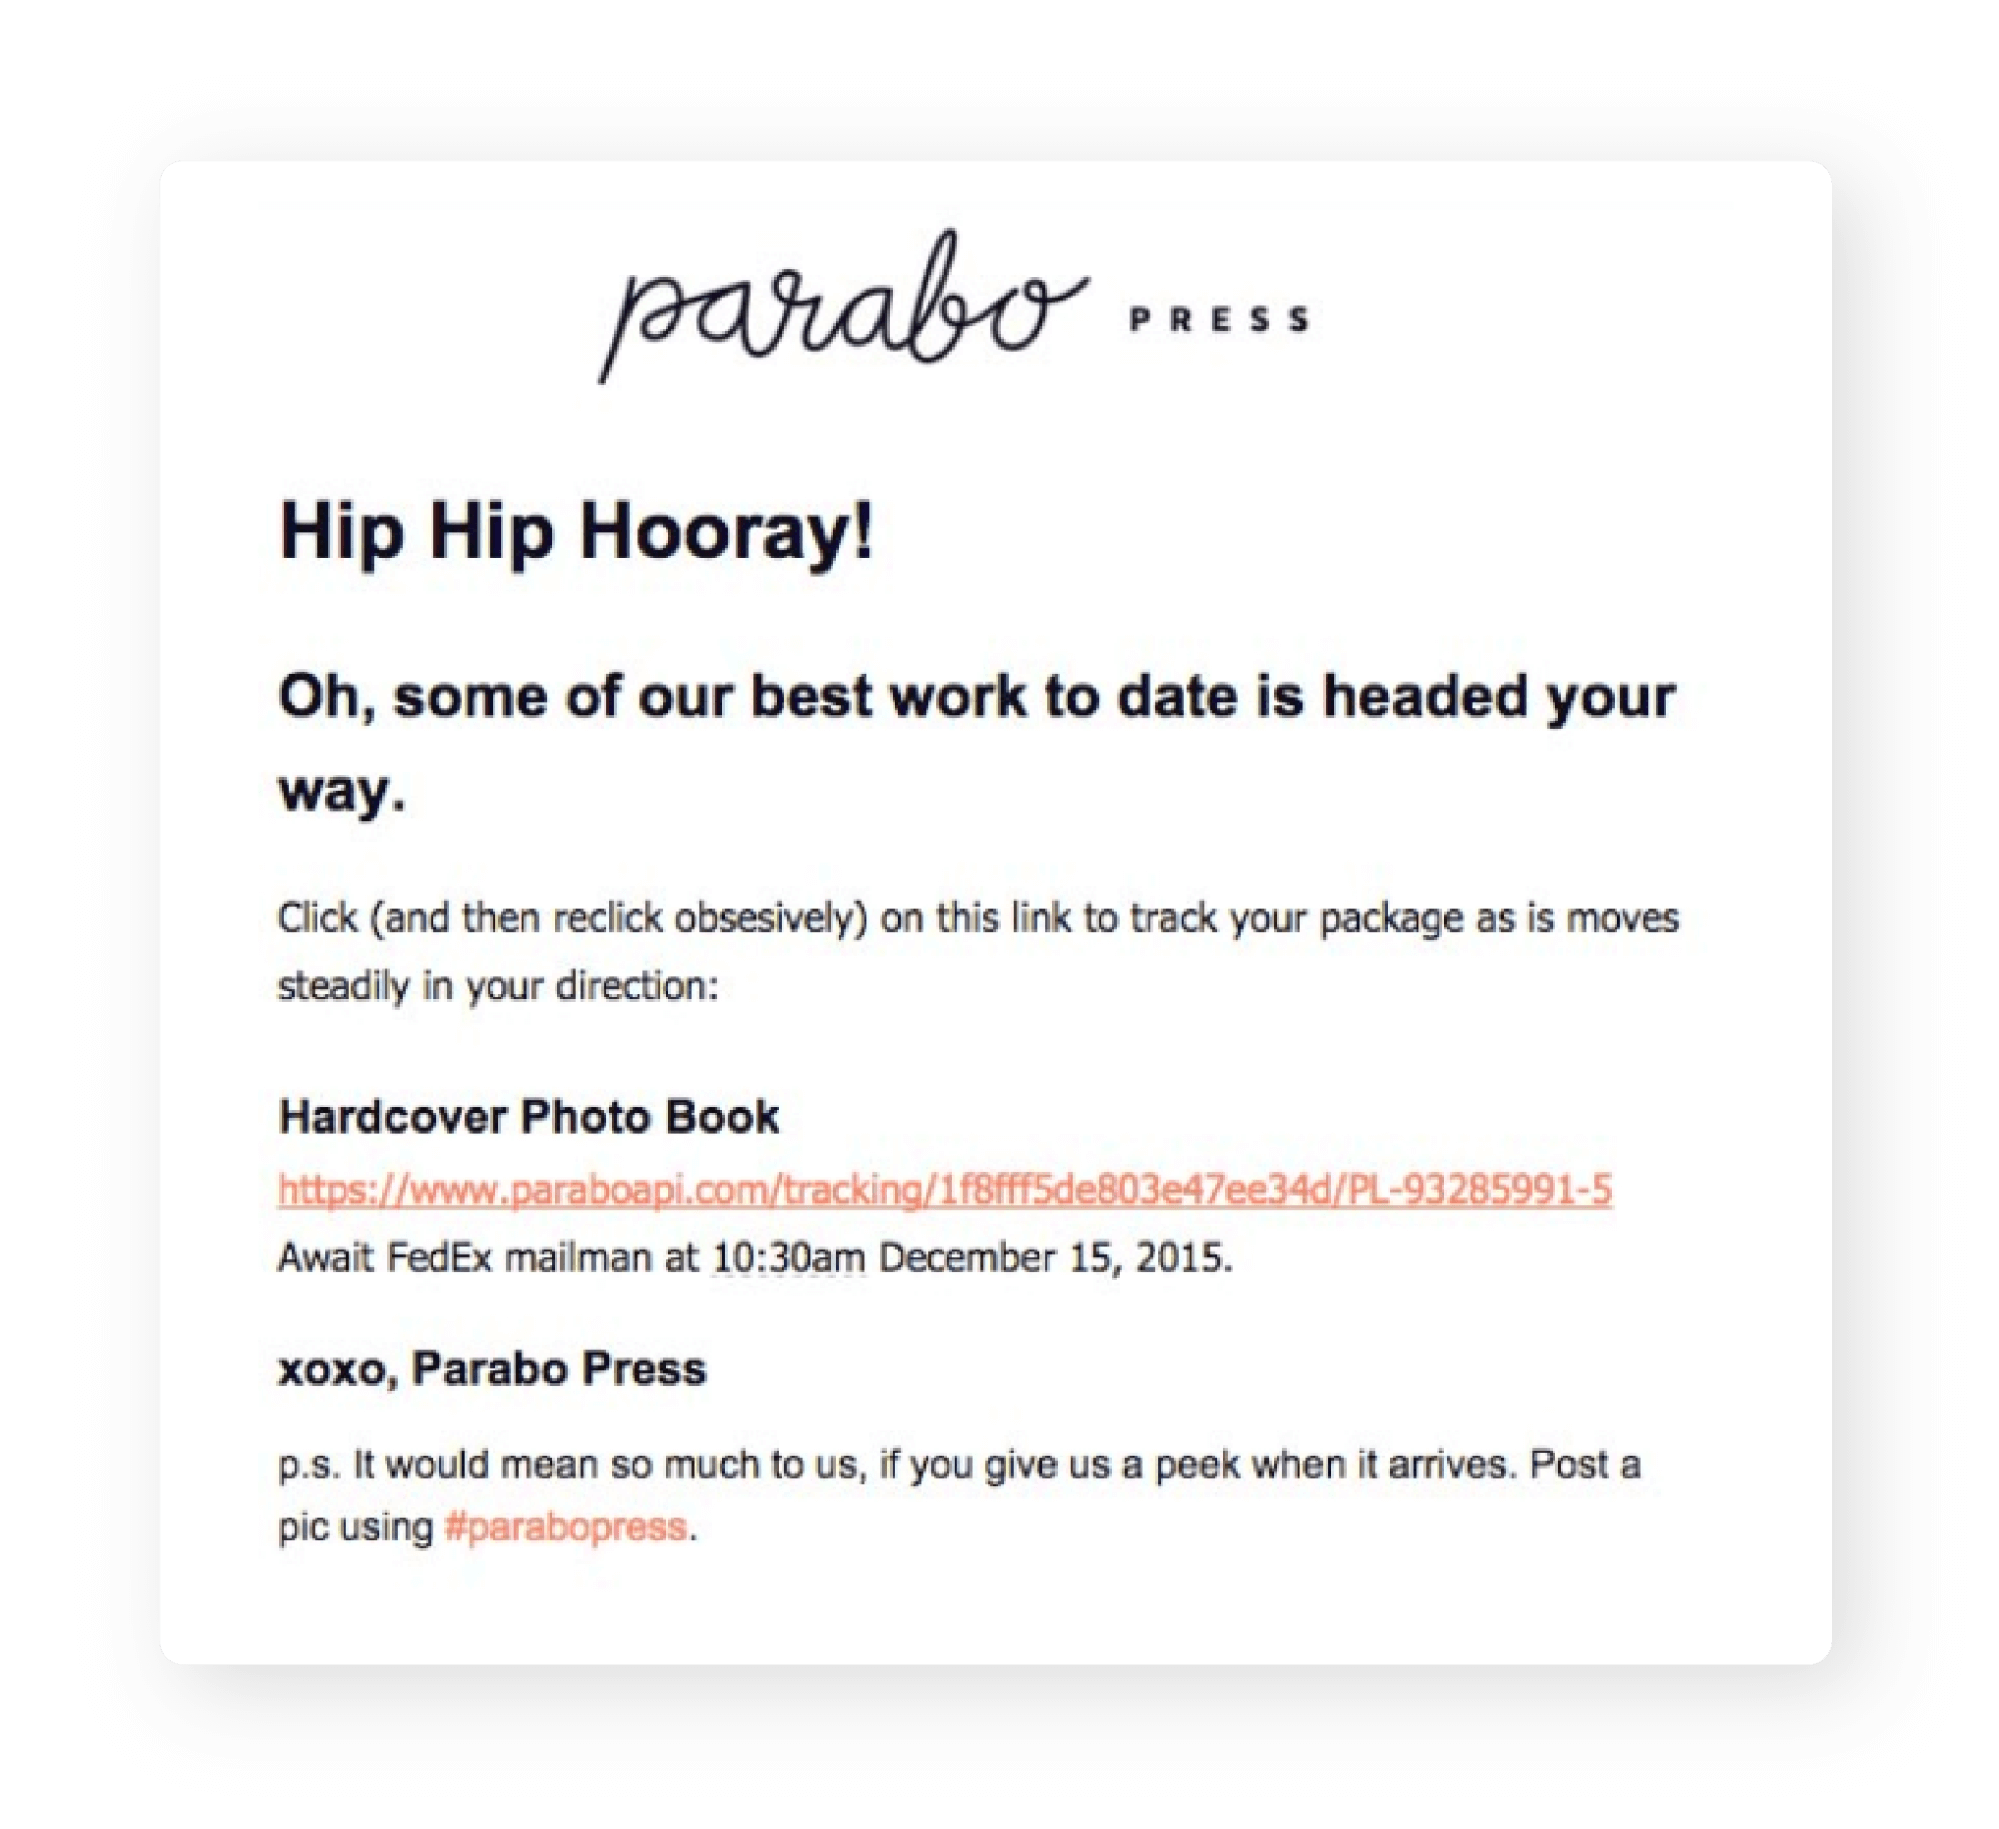 Parabo's Order Confirmation Email with Tracking Info URL